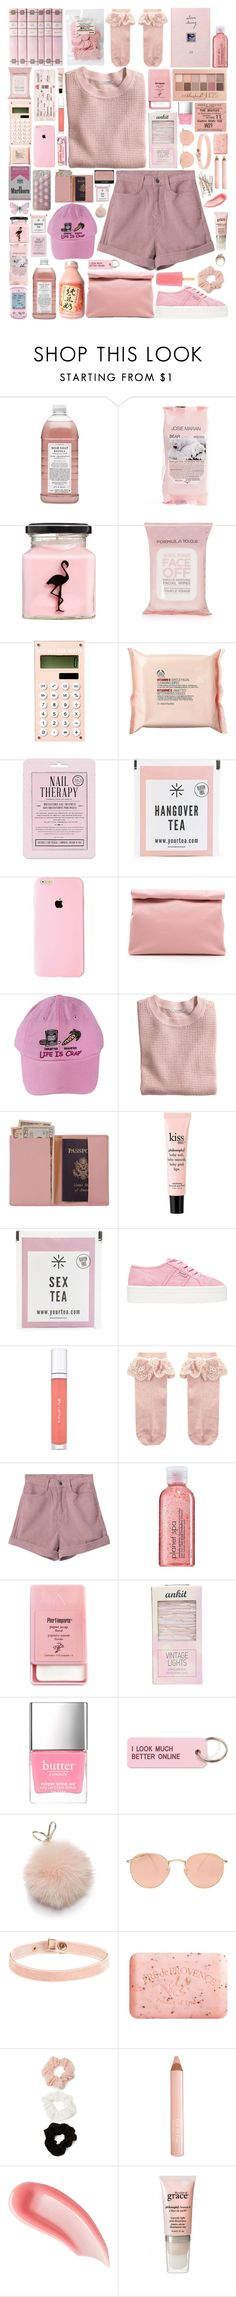 """""""soft baby"""" by gentlyharry ❤ liked on Polyvore featuring Hello Kitty, Williams-Sonoma, Josie Maran, ASOS, Topshop, The Body Shop, Love 21, Marie Turnor, H&M and Royce Leather"""